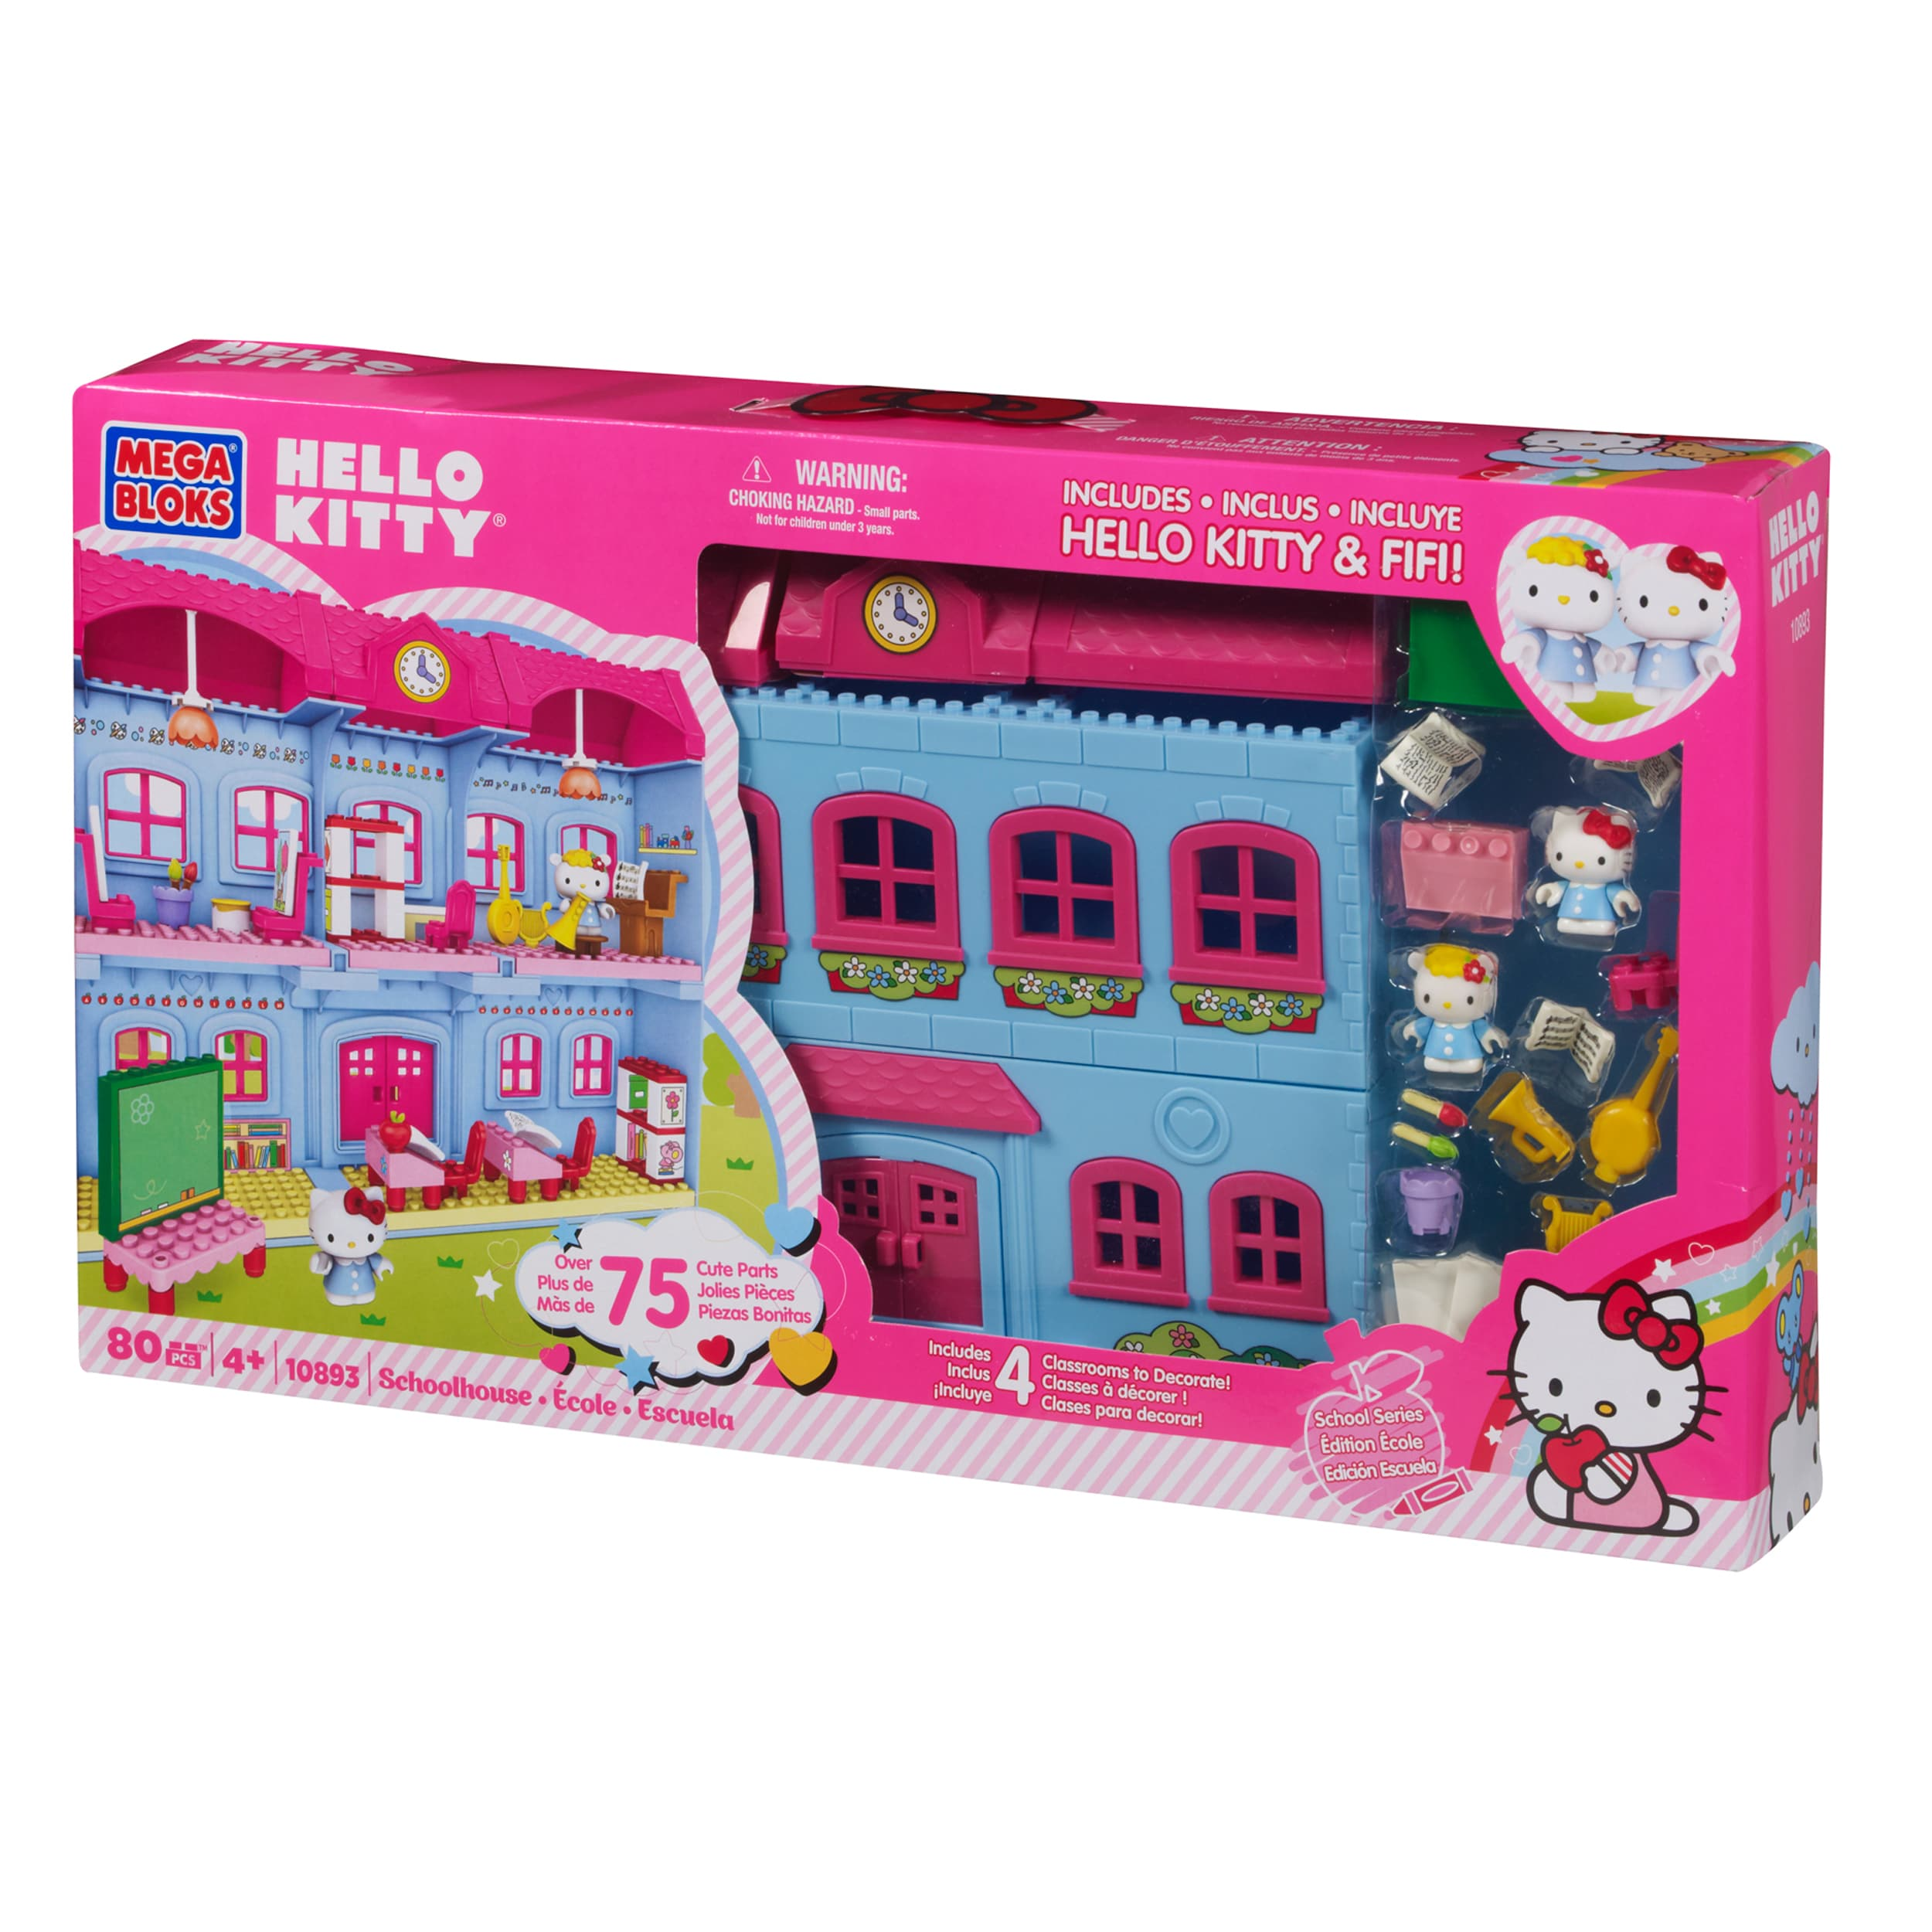 Mega Bloks Hello Kitty Schoolhouse Playset